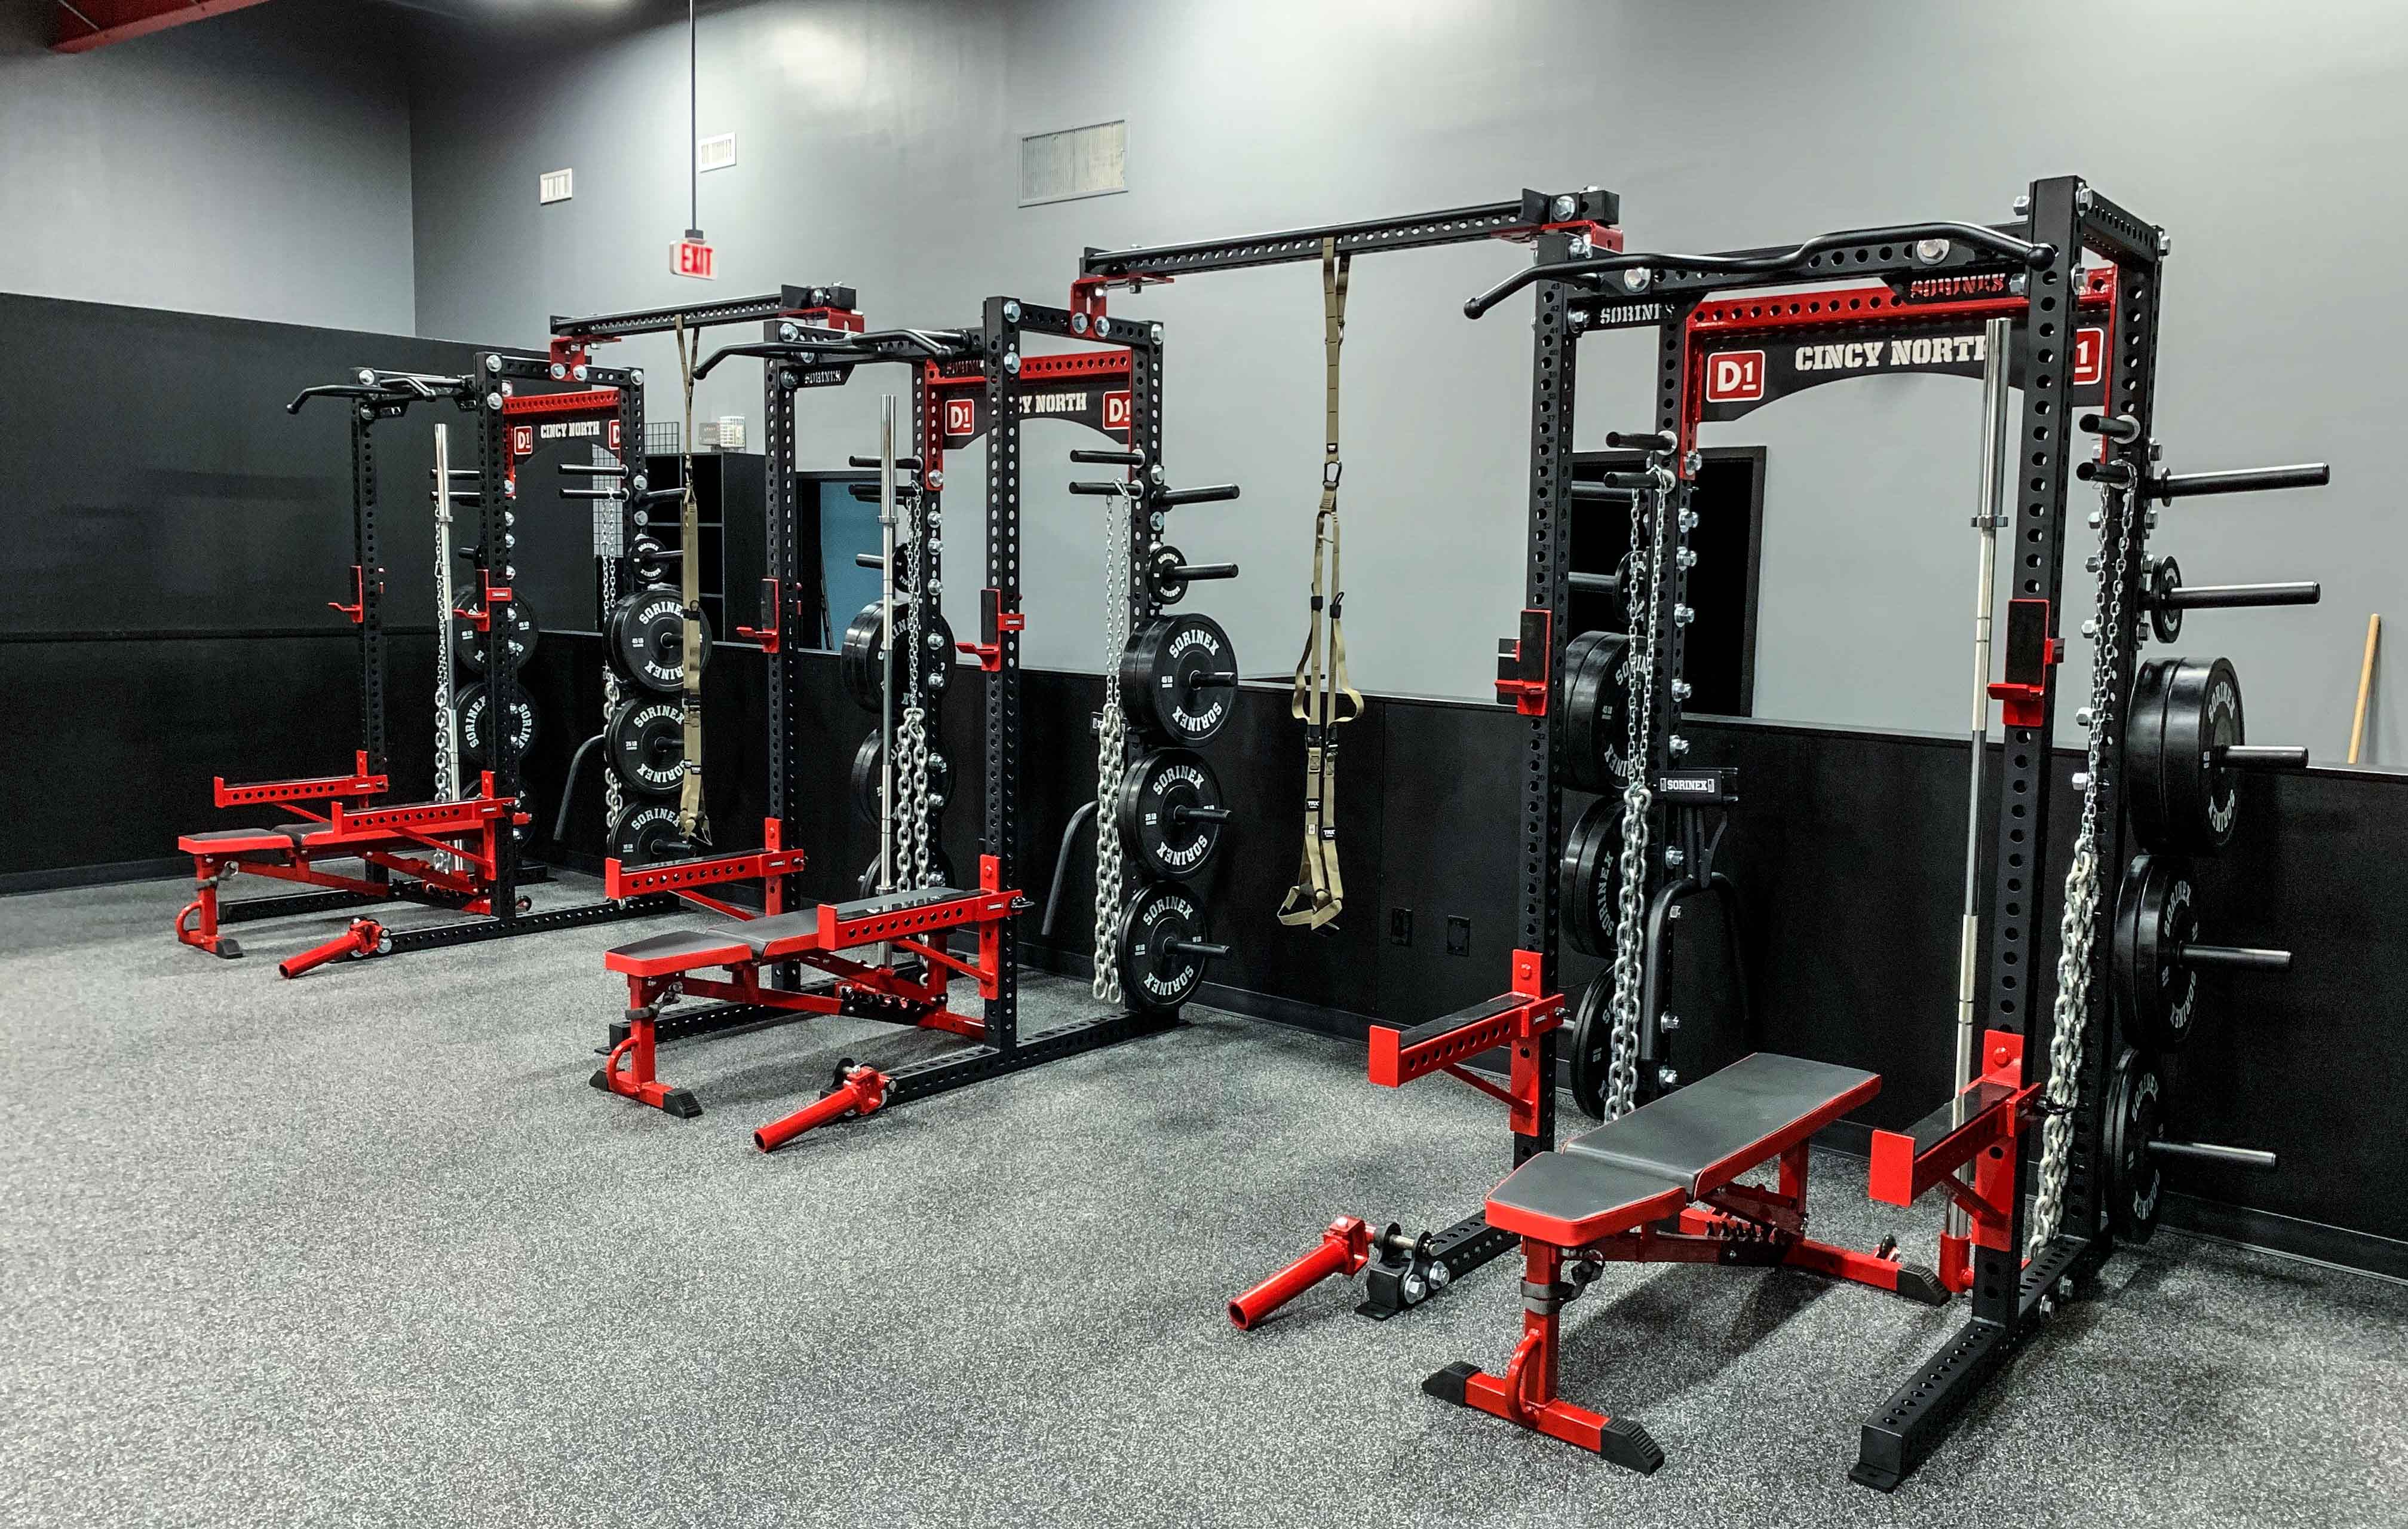 Cincy North power racks